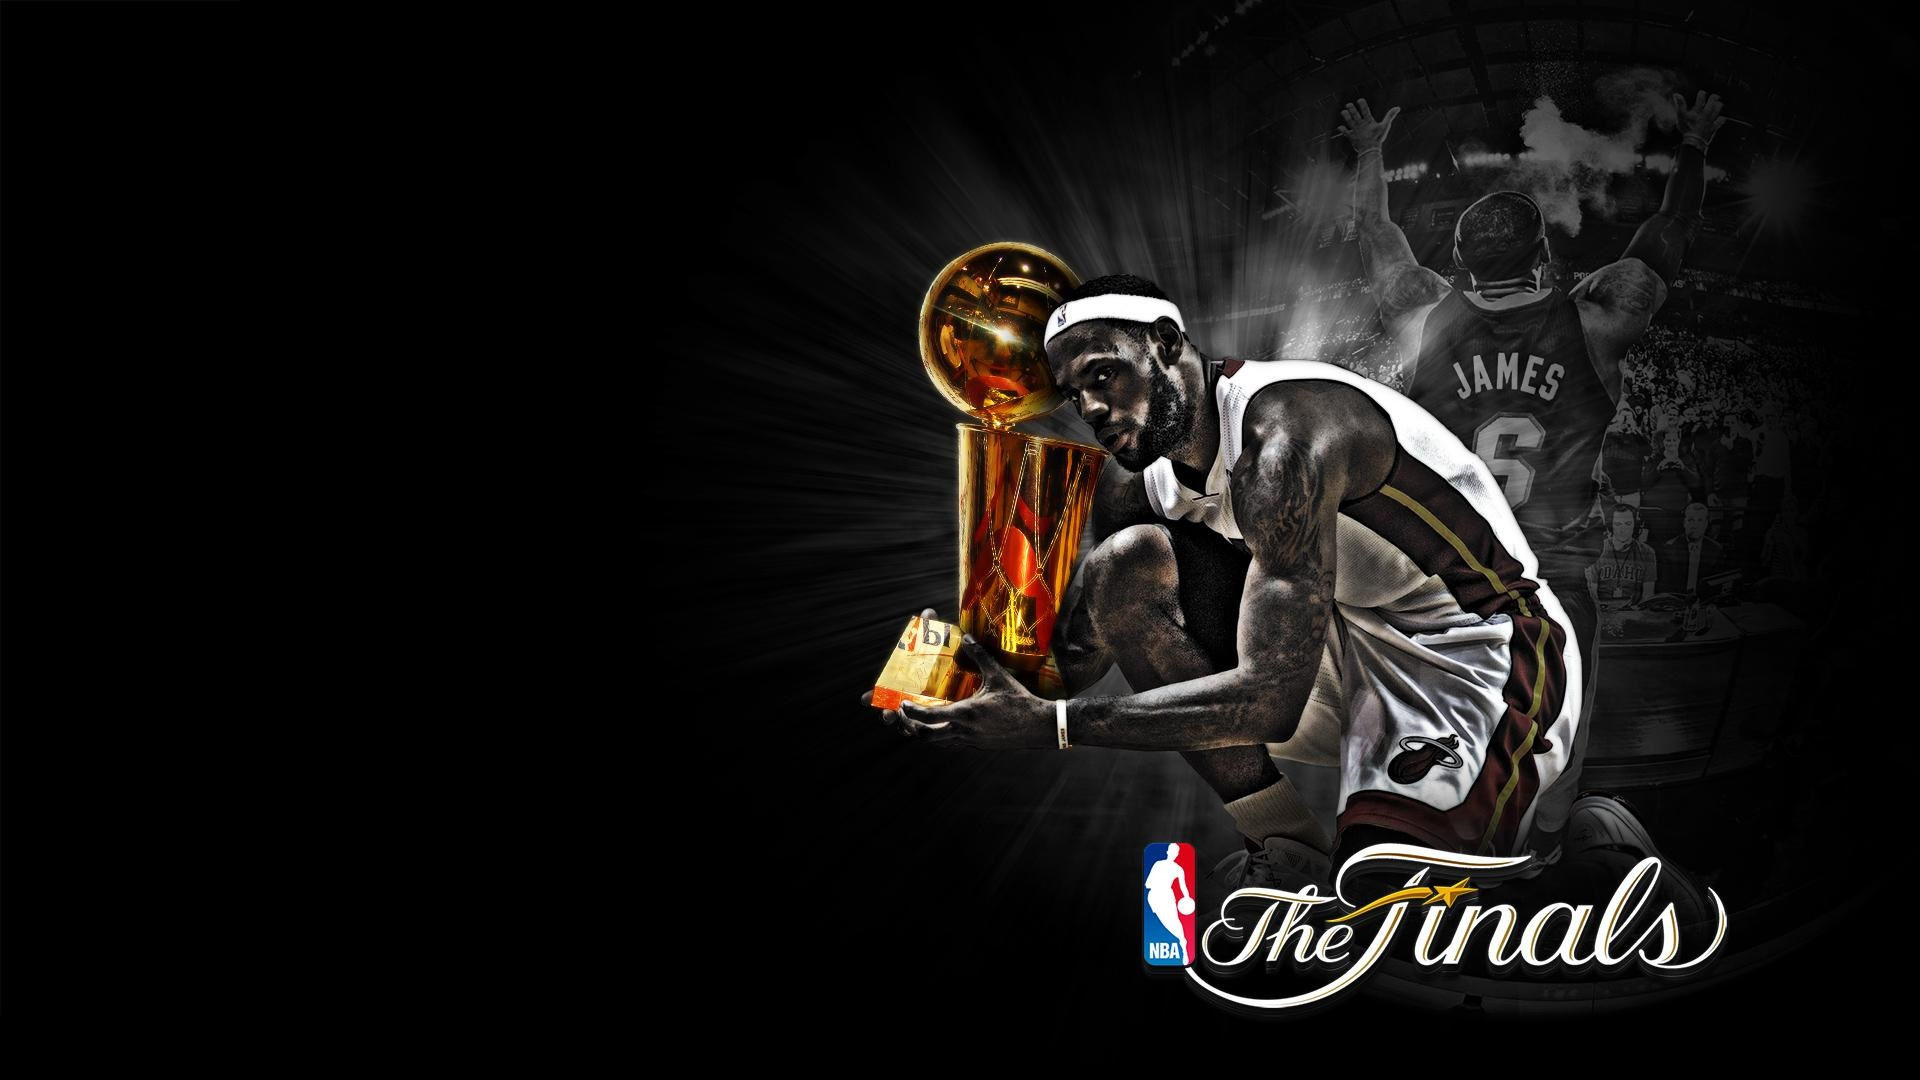 1920x1080 HD NBA Finals 2012 Miami Heat Wallpaper Free Download Lovely